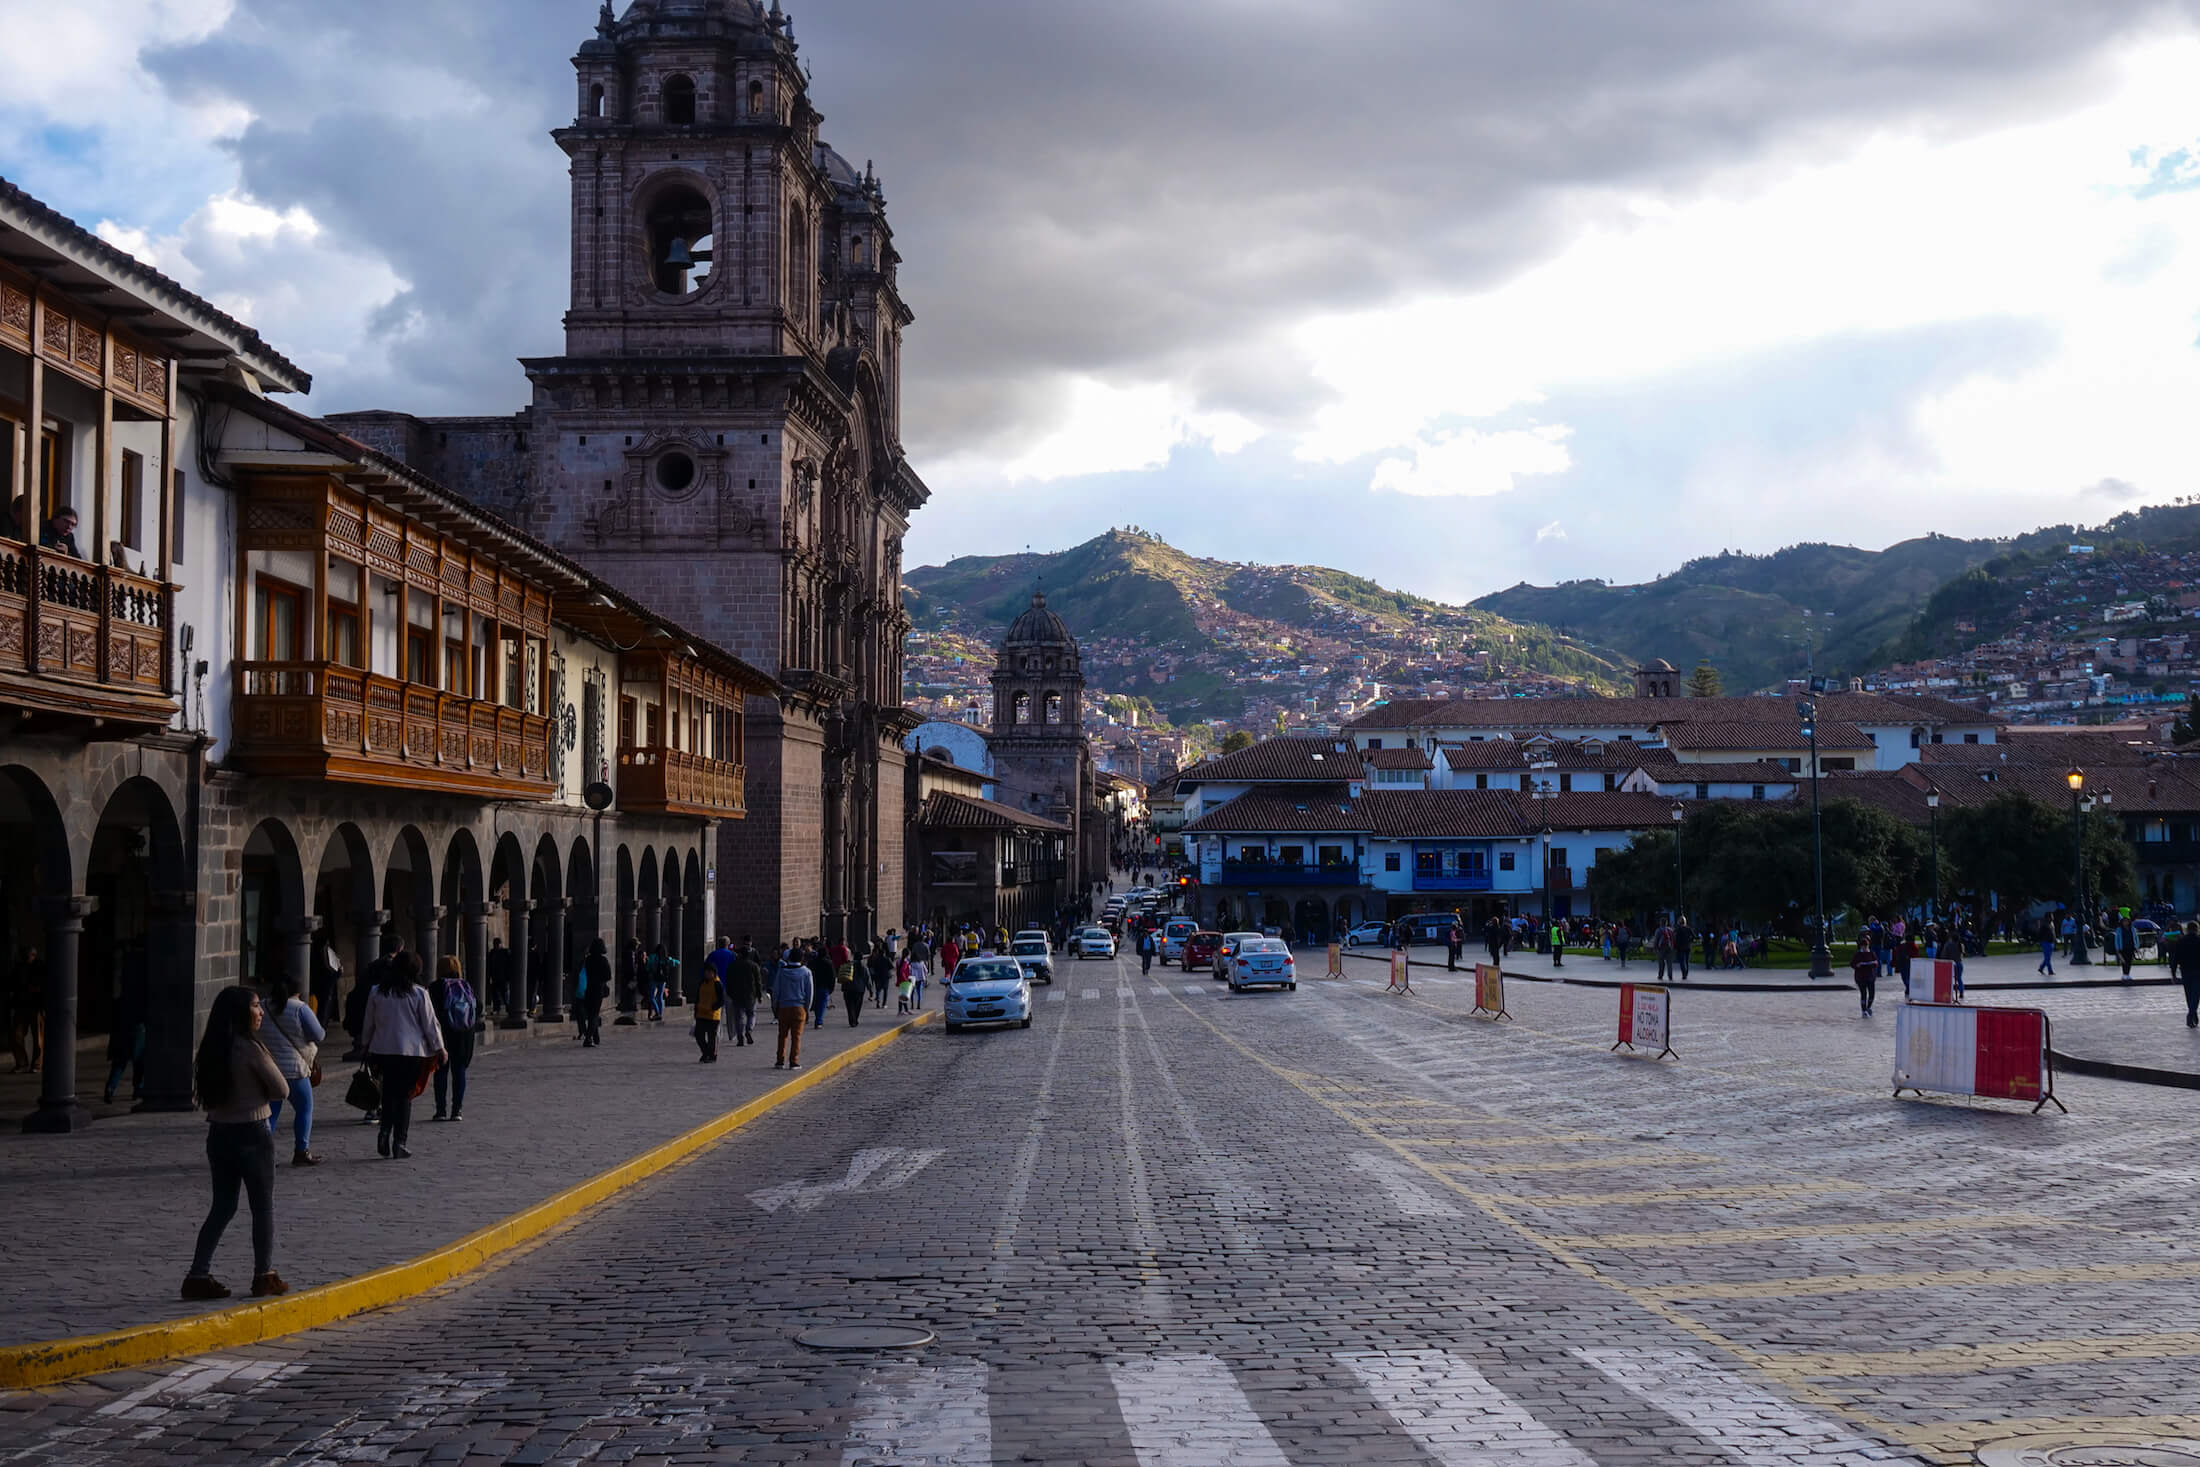 Cusco has beautiful ancient culture, and modern meals of gorgeous food.